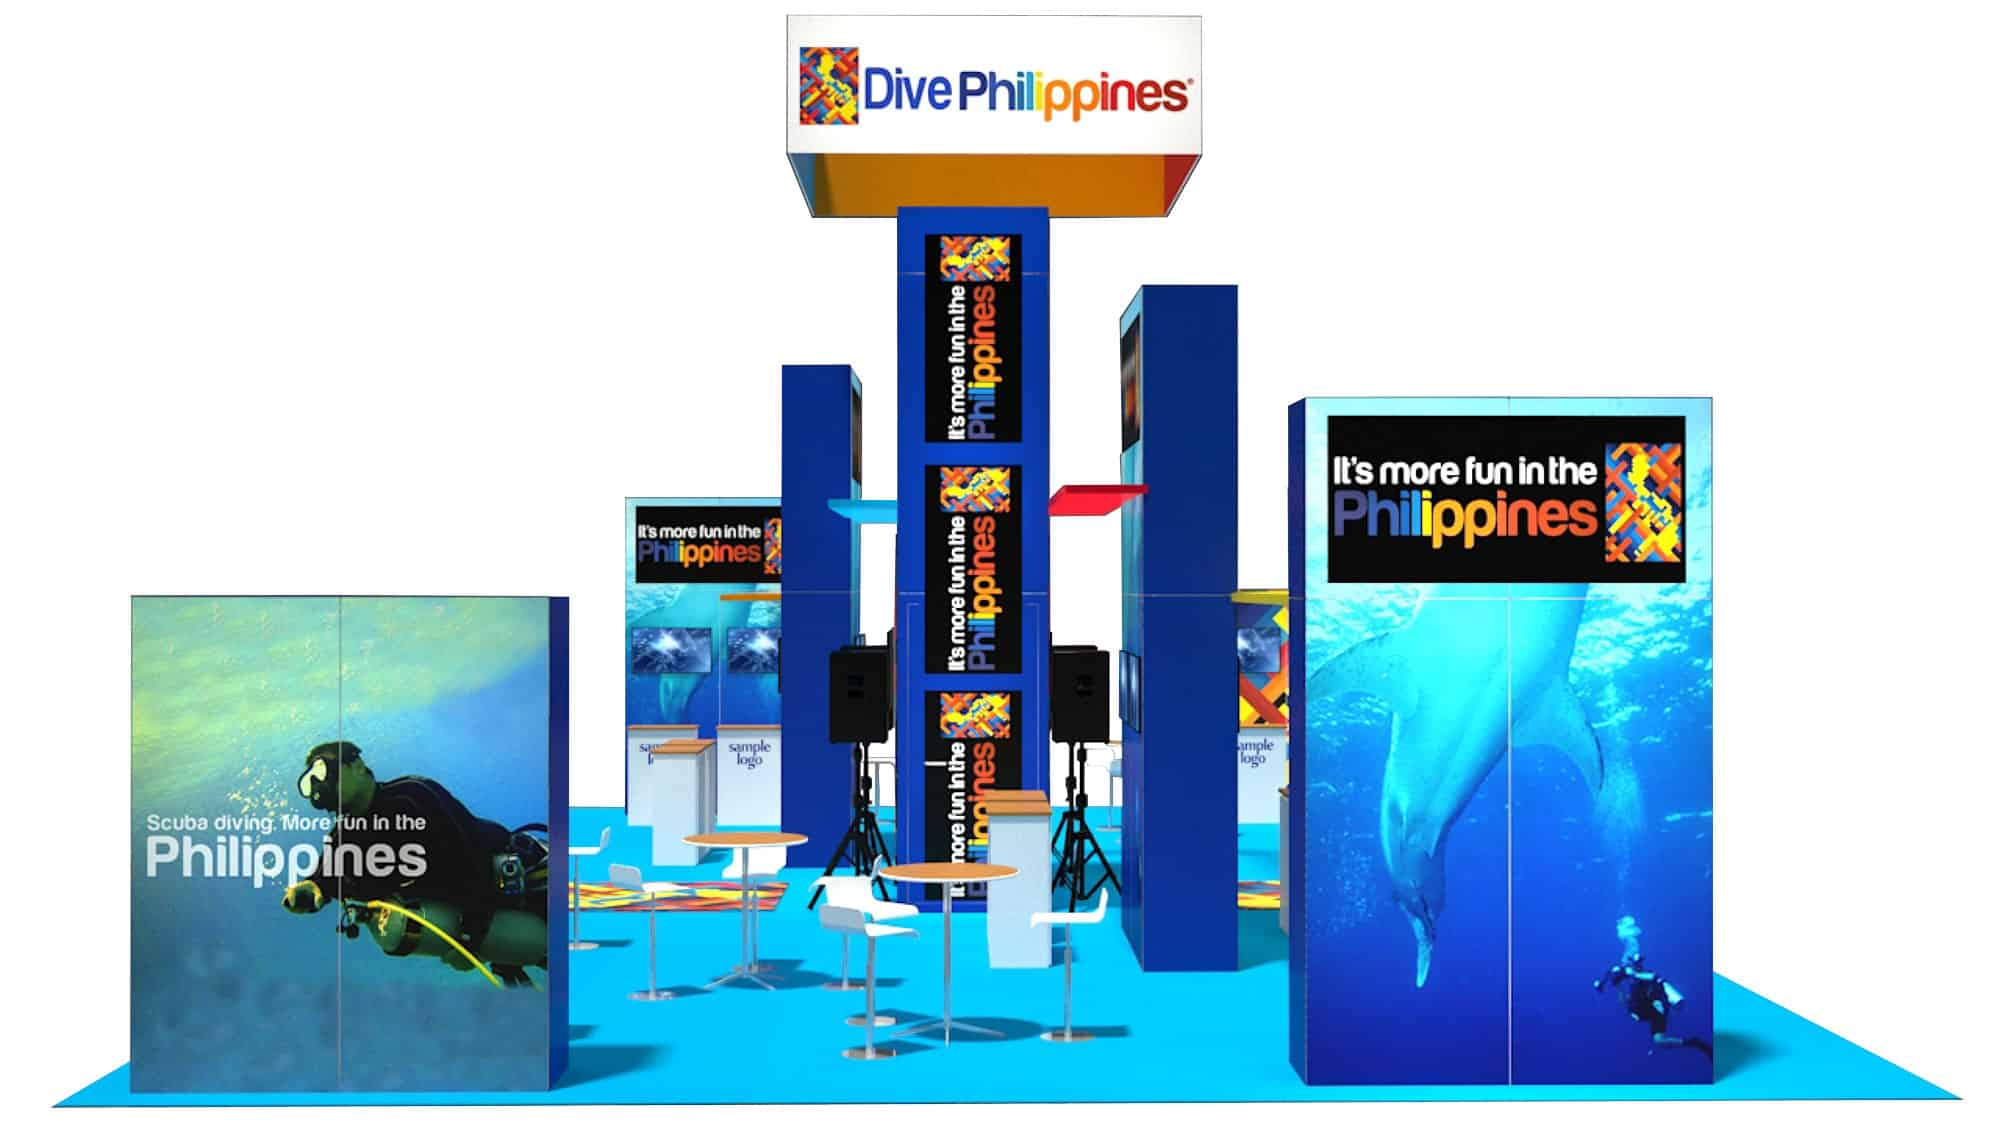 Trade Show Booth Objectives : Philippines tourism larger trade show booth